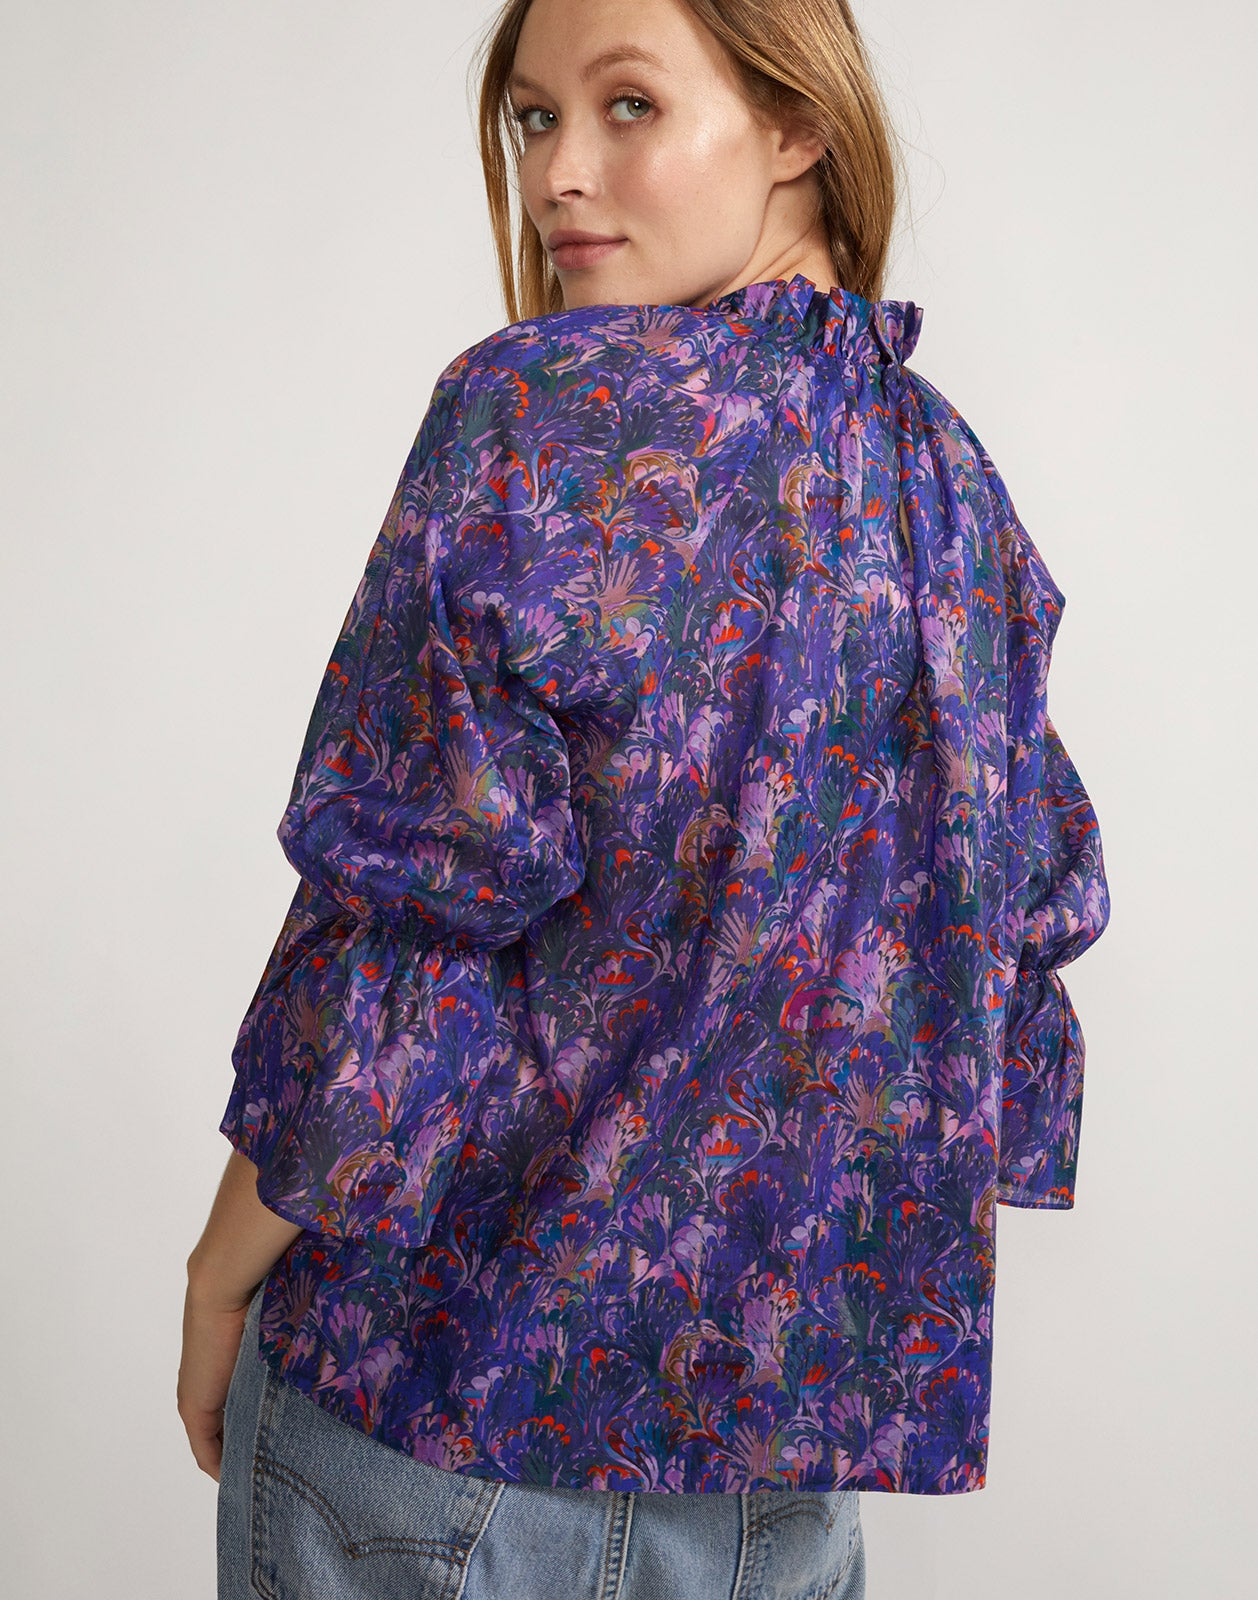 Back view of waterfall blouse with purple marble print